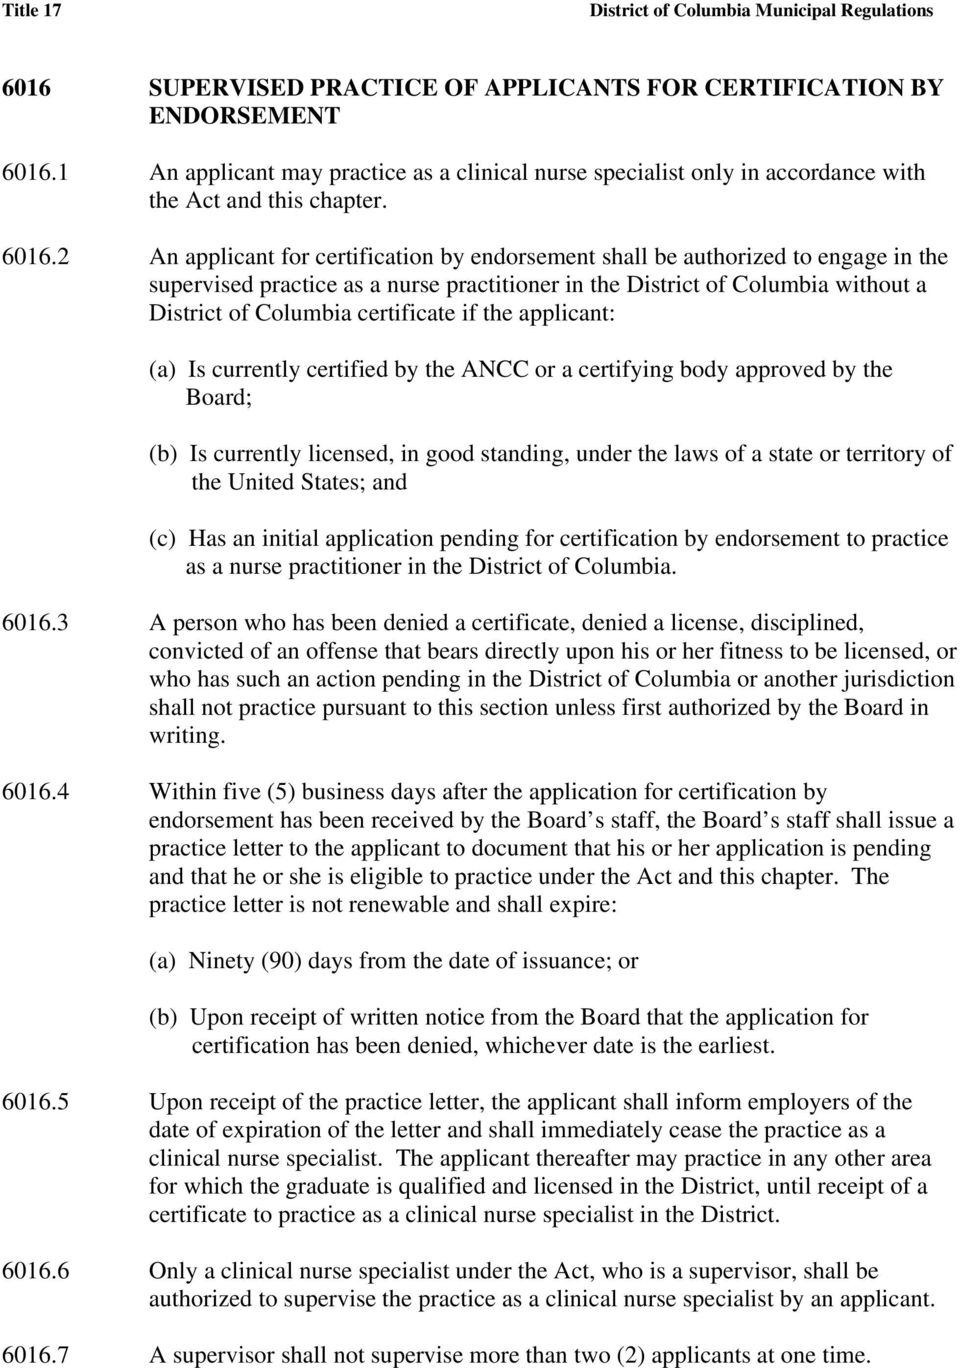 2 An applicant for certification by endorsement shall be authorized to engage in the supervised practice as a nurse practitioner in the District of Columbia without a District of Columbia certificate